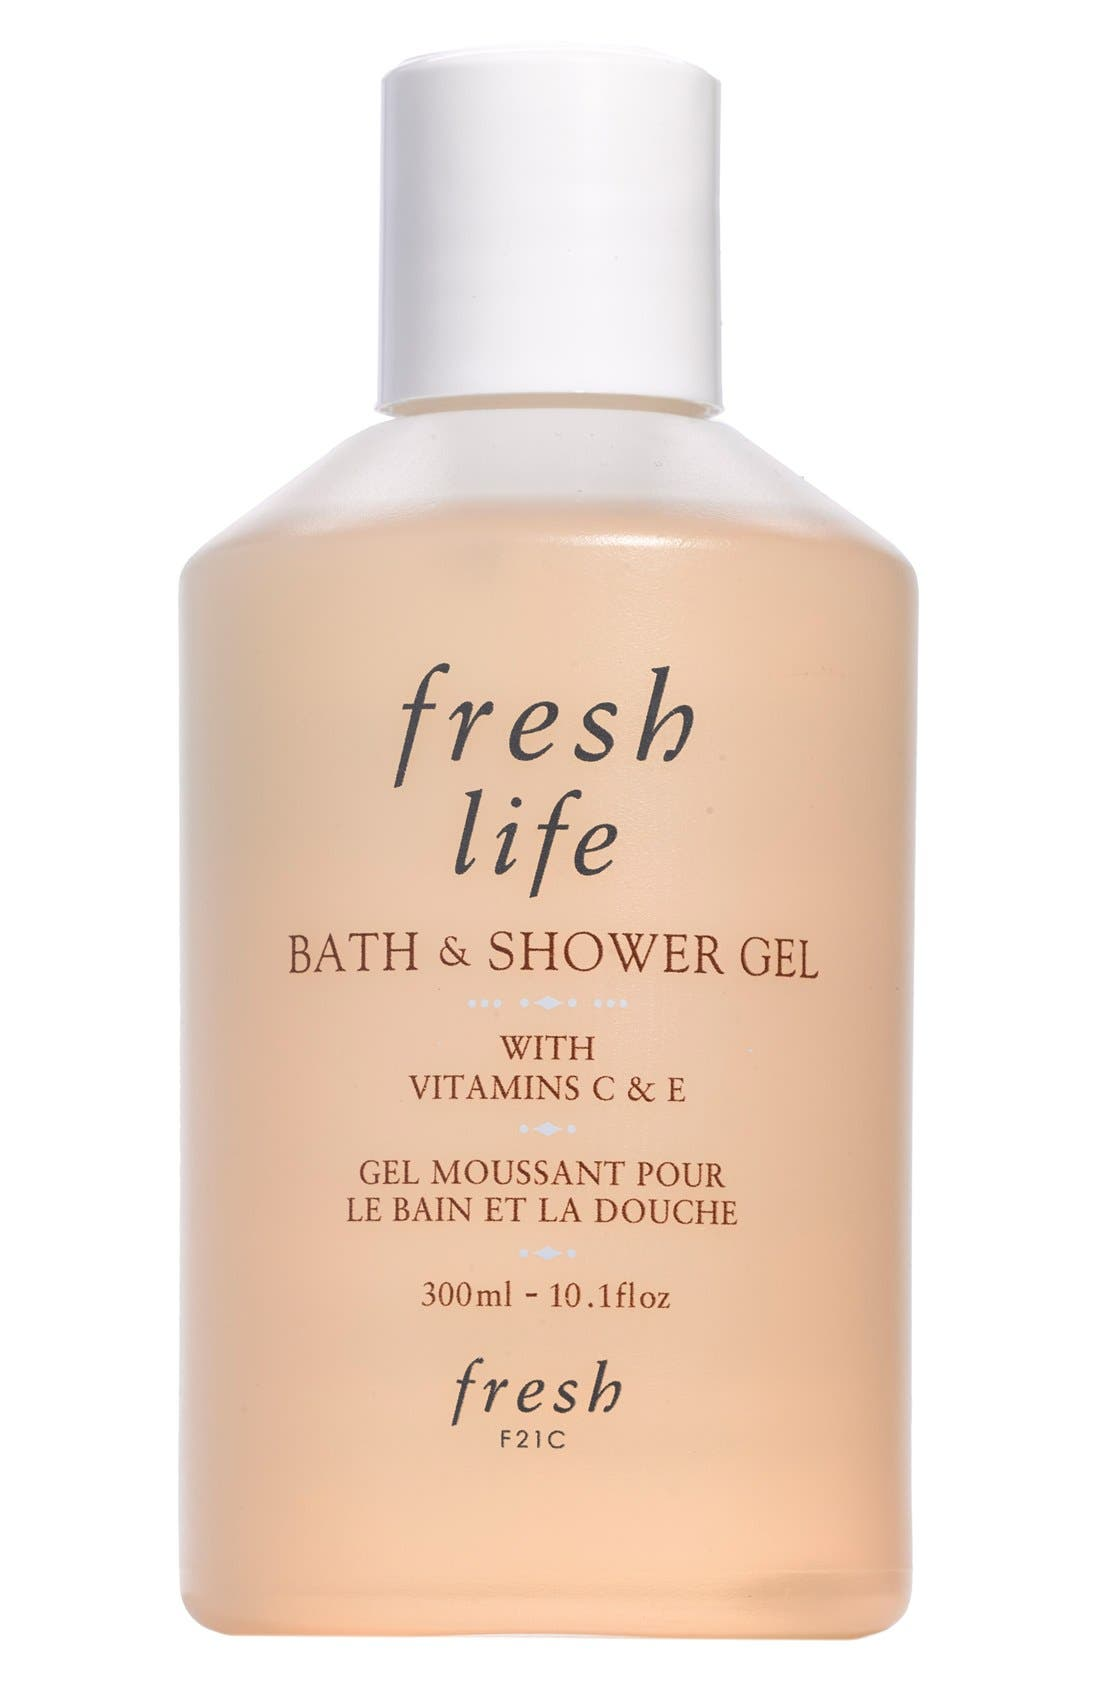 Fresh® 'Life' Bath & Shower Gel